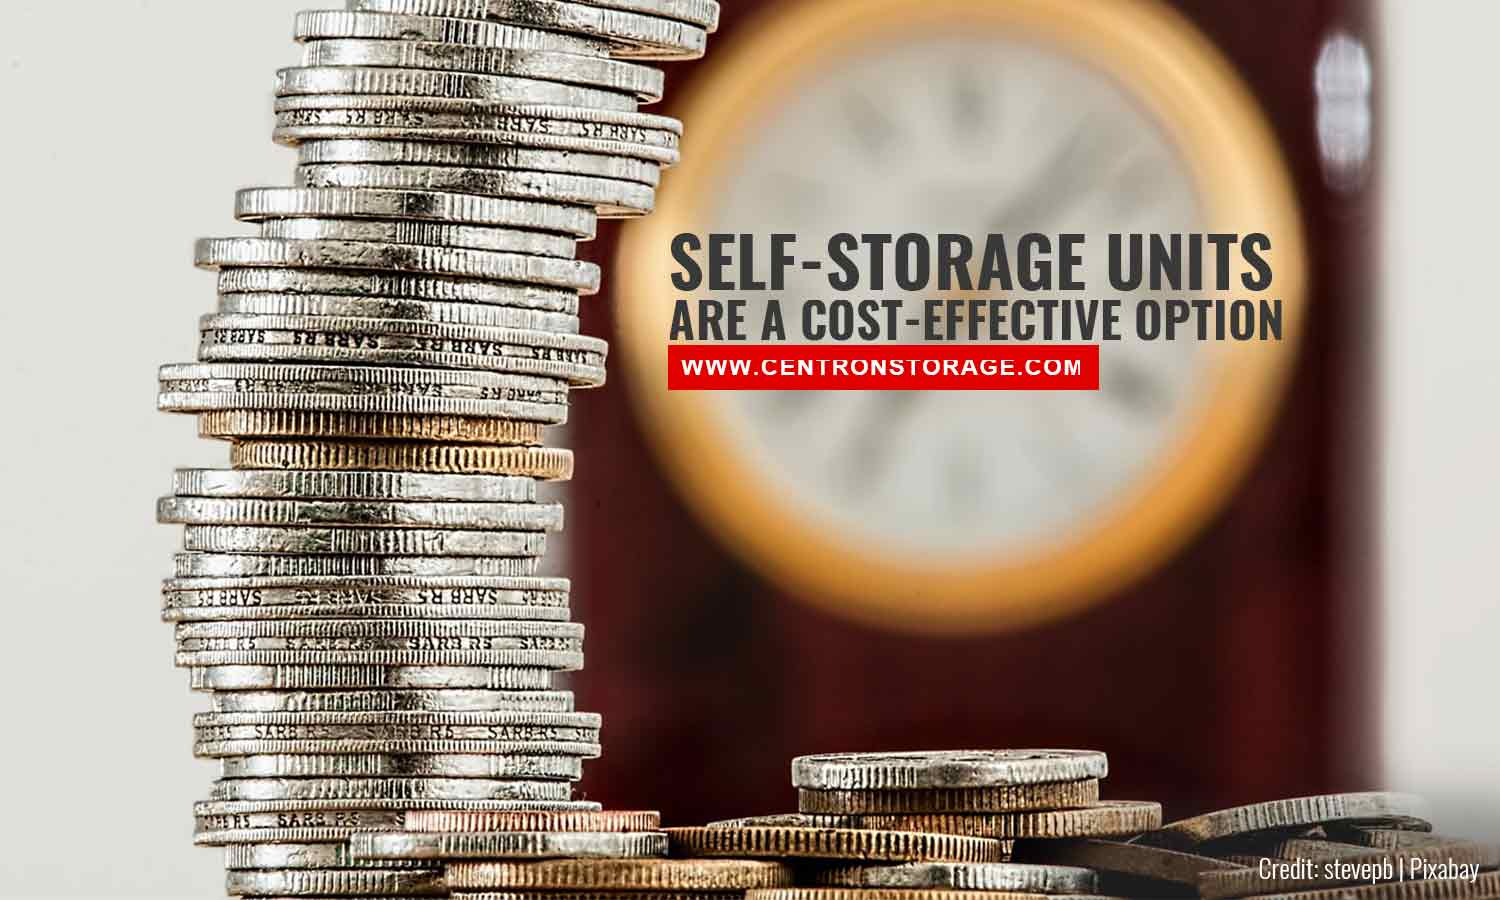 Self-storage units are a cost-effective option